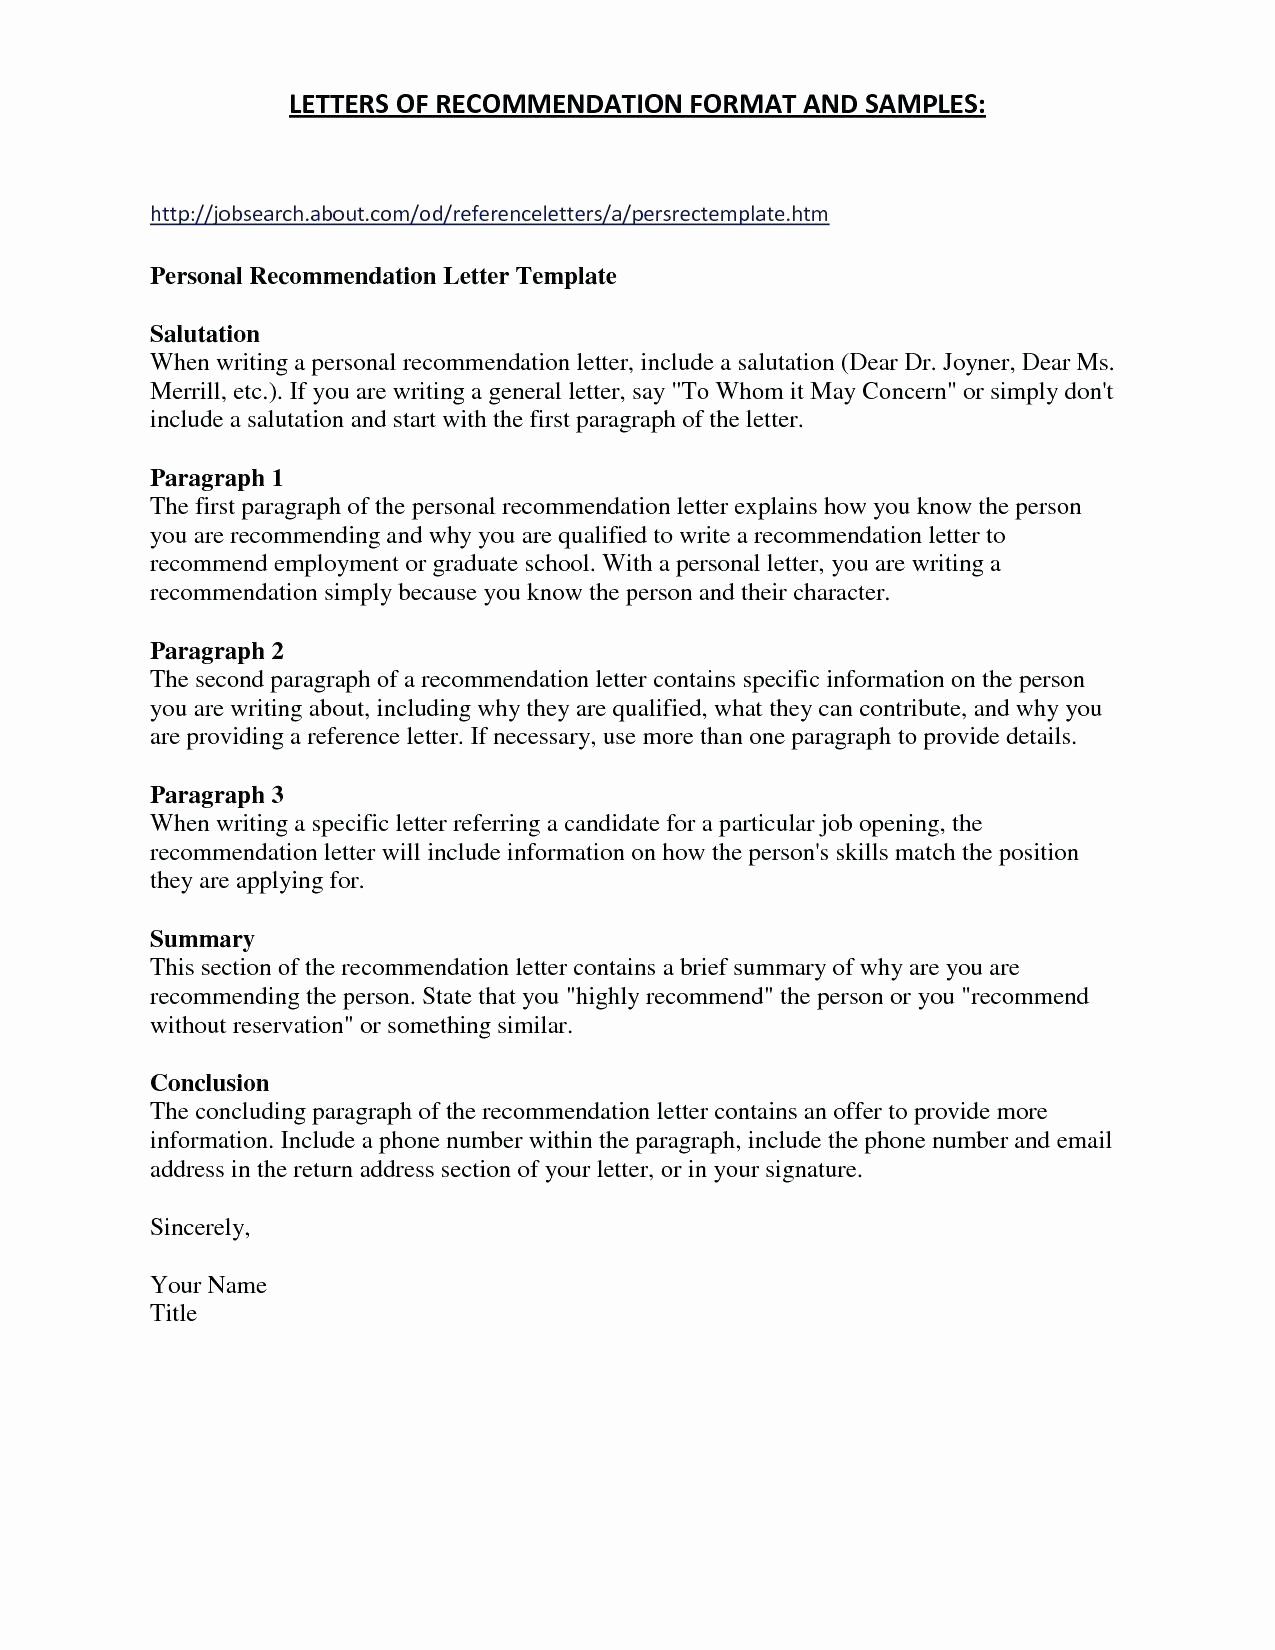 Scholarship reference letter template samples letter cover templates scholarship reference letter template sample personalcharacter reference letter created using ms word thecheapjerseys Gallery